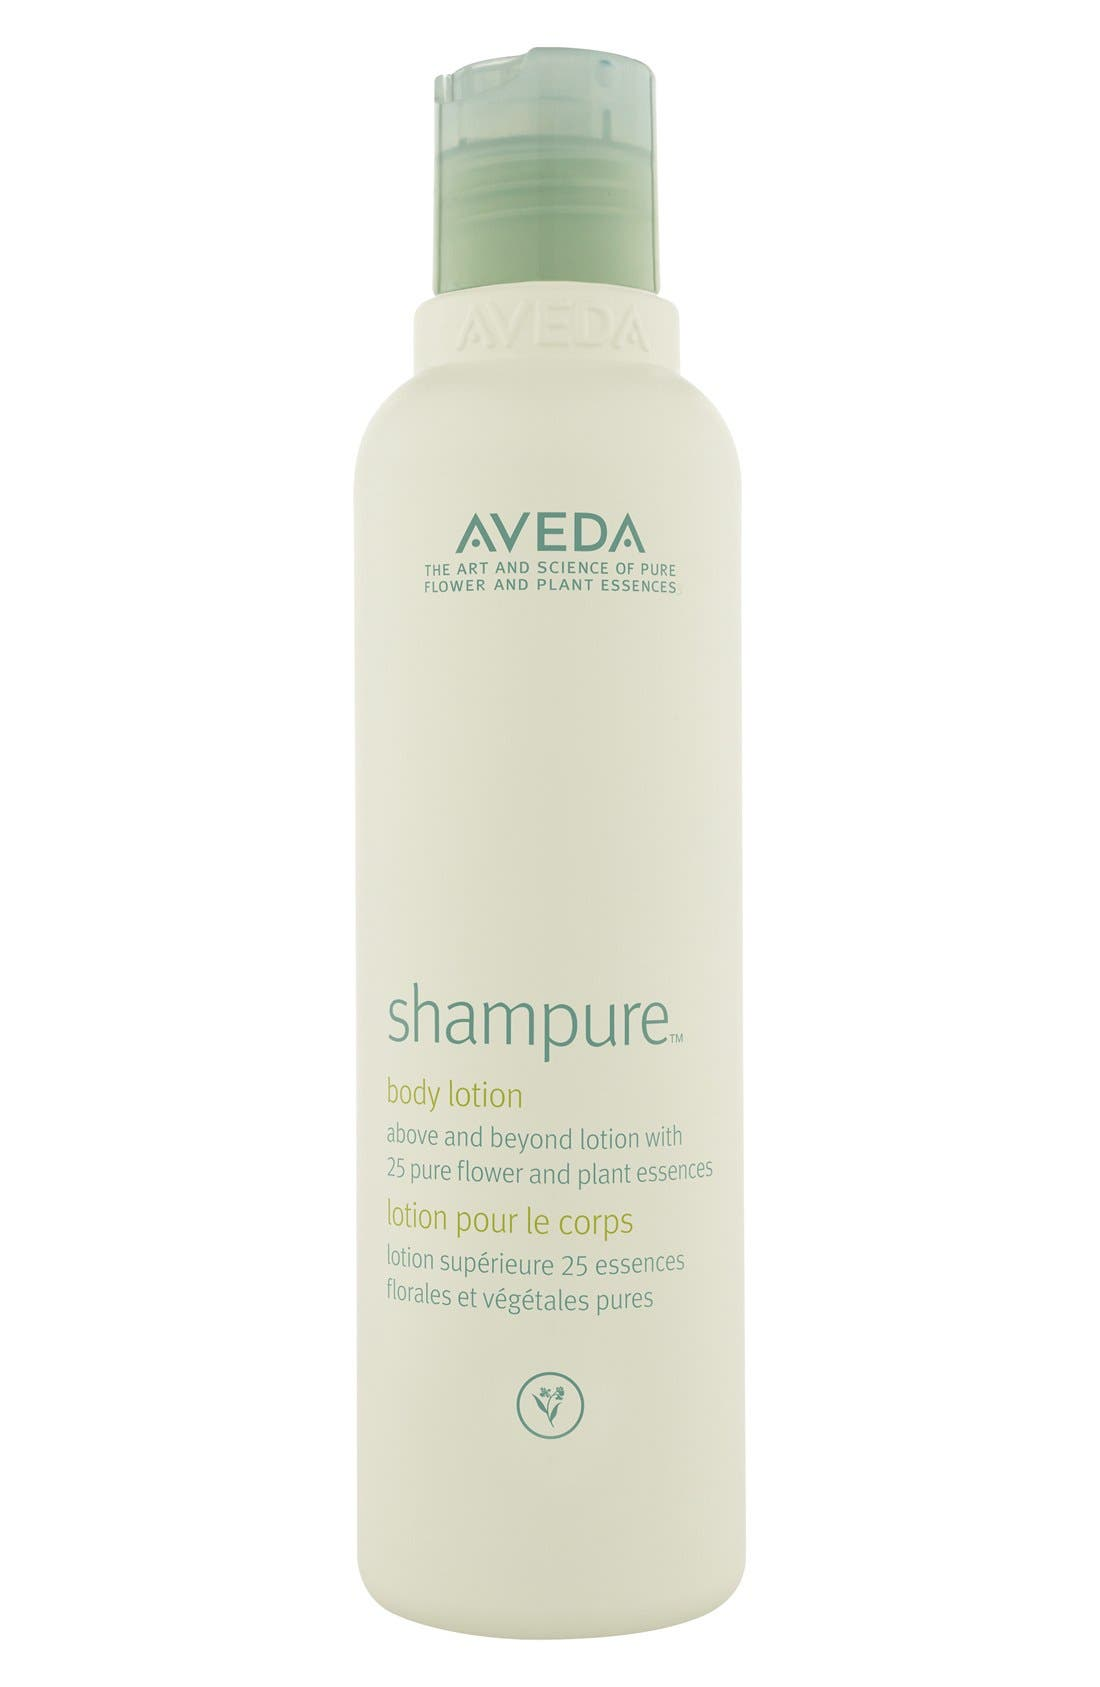 Aveda 'Shampure™' Body Lotion